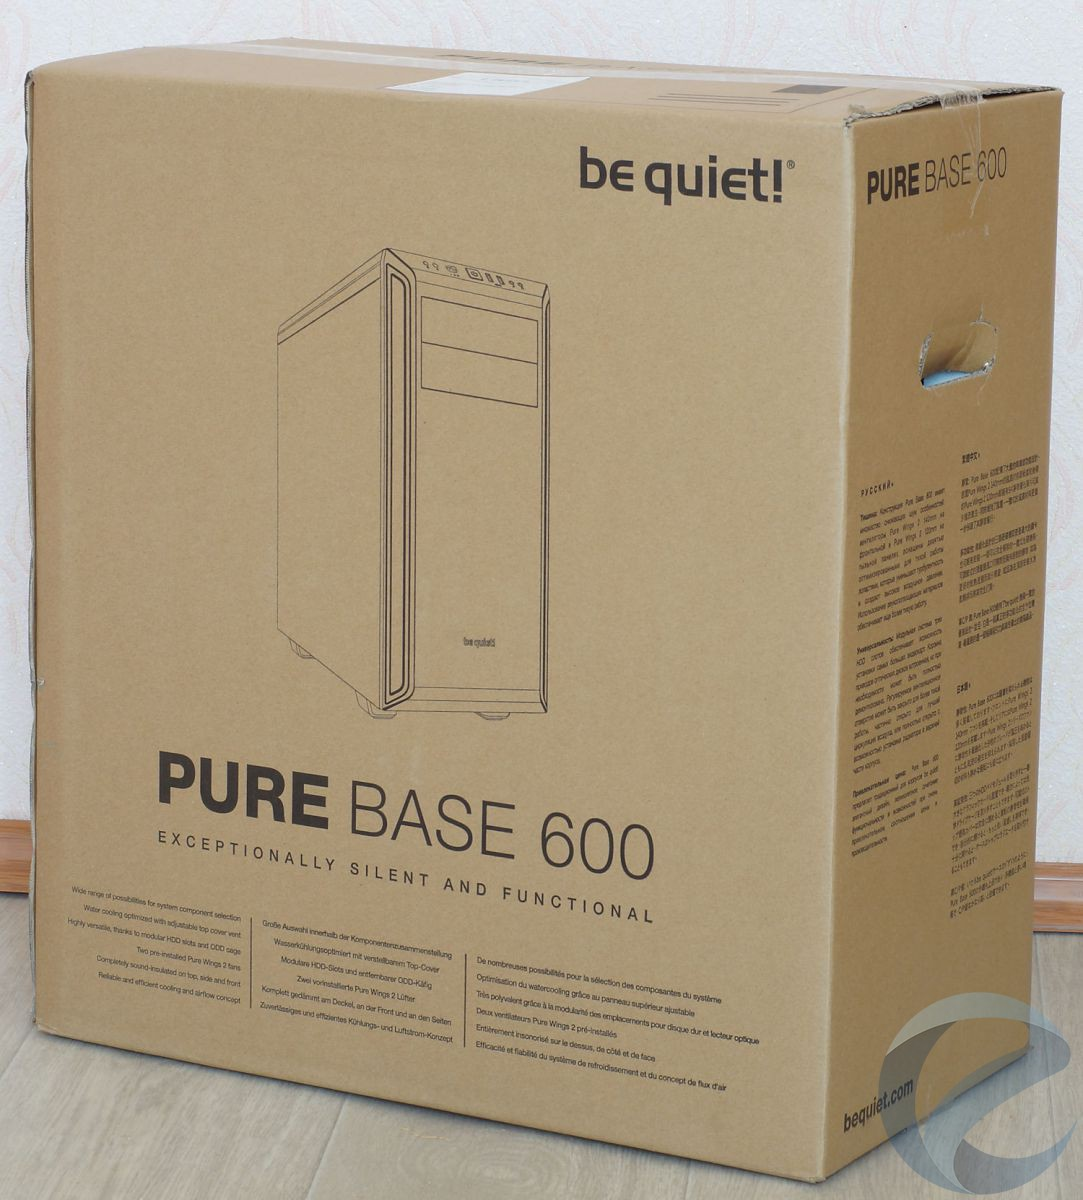 Упаковка и комплектация корпуса be quiet! Pure Base 600